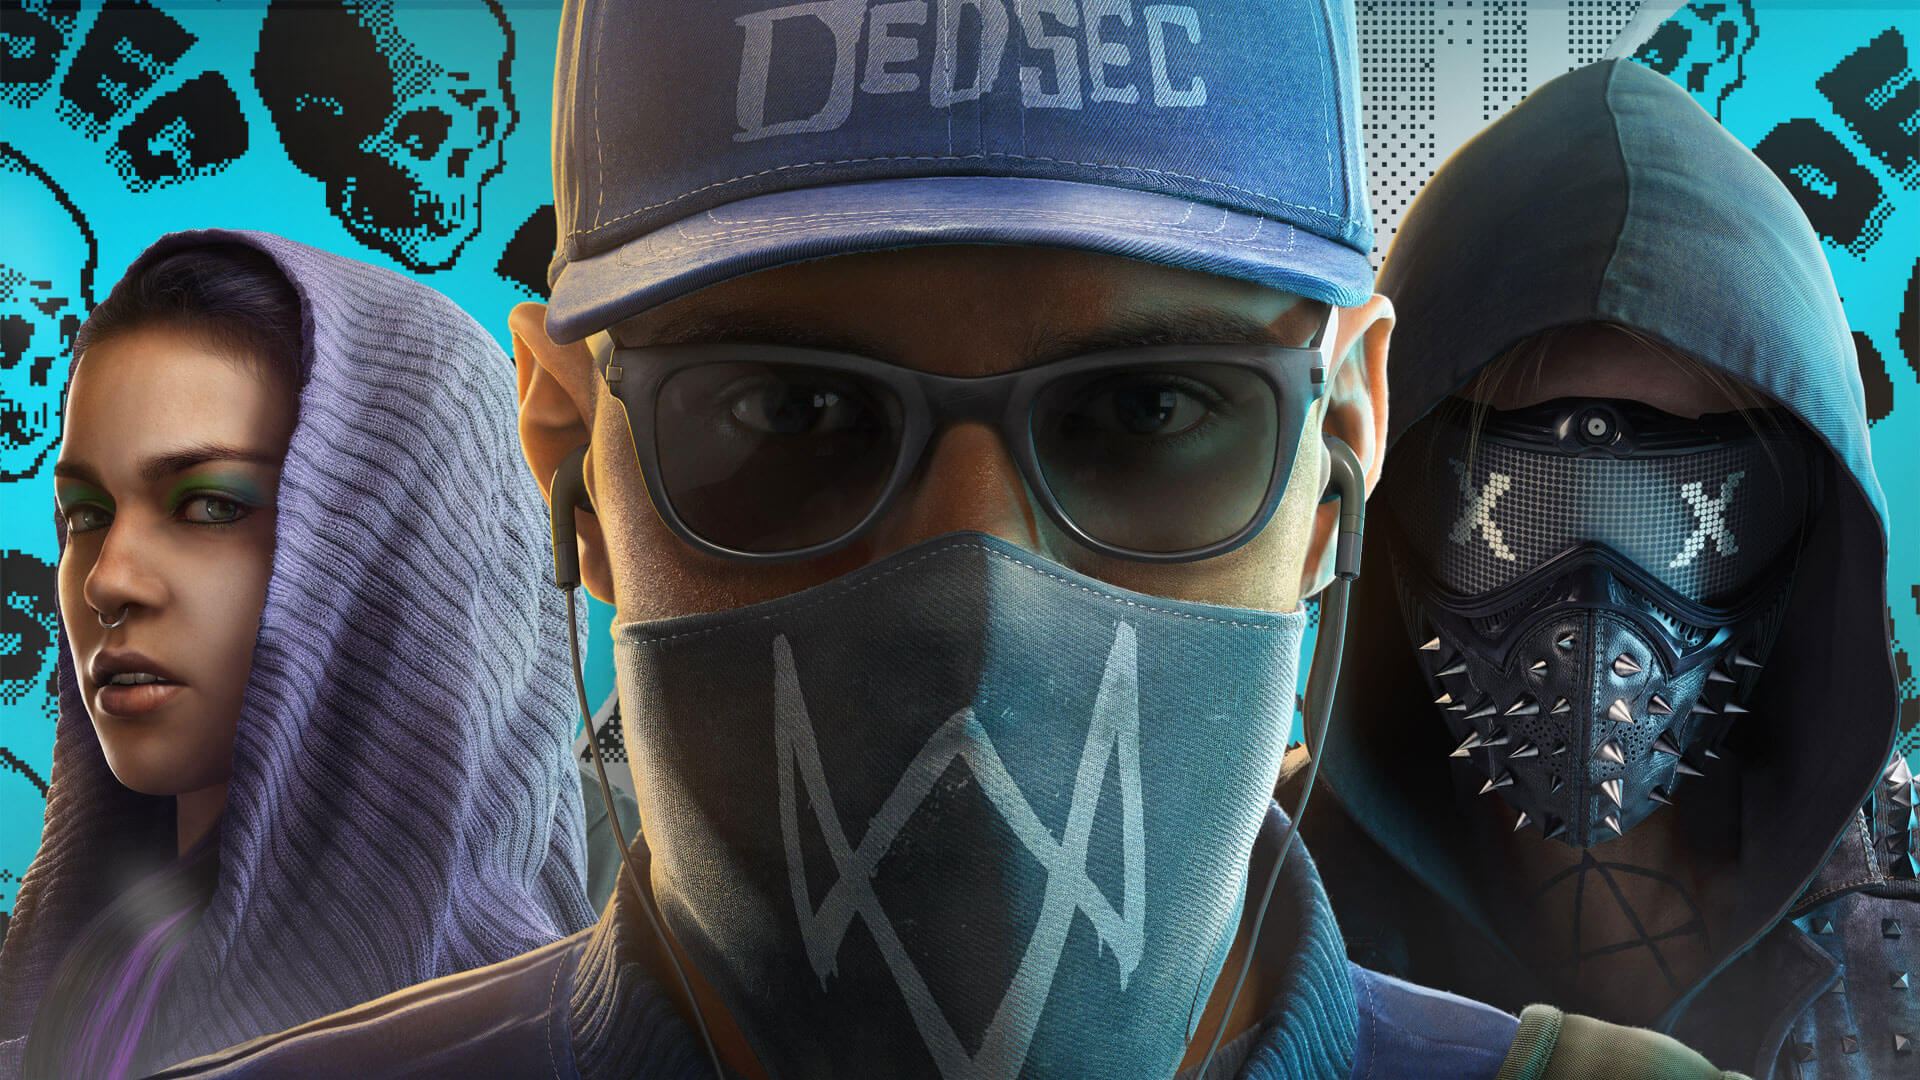 watch_dogs_2_banner